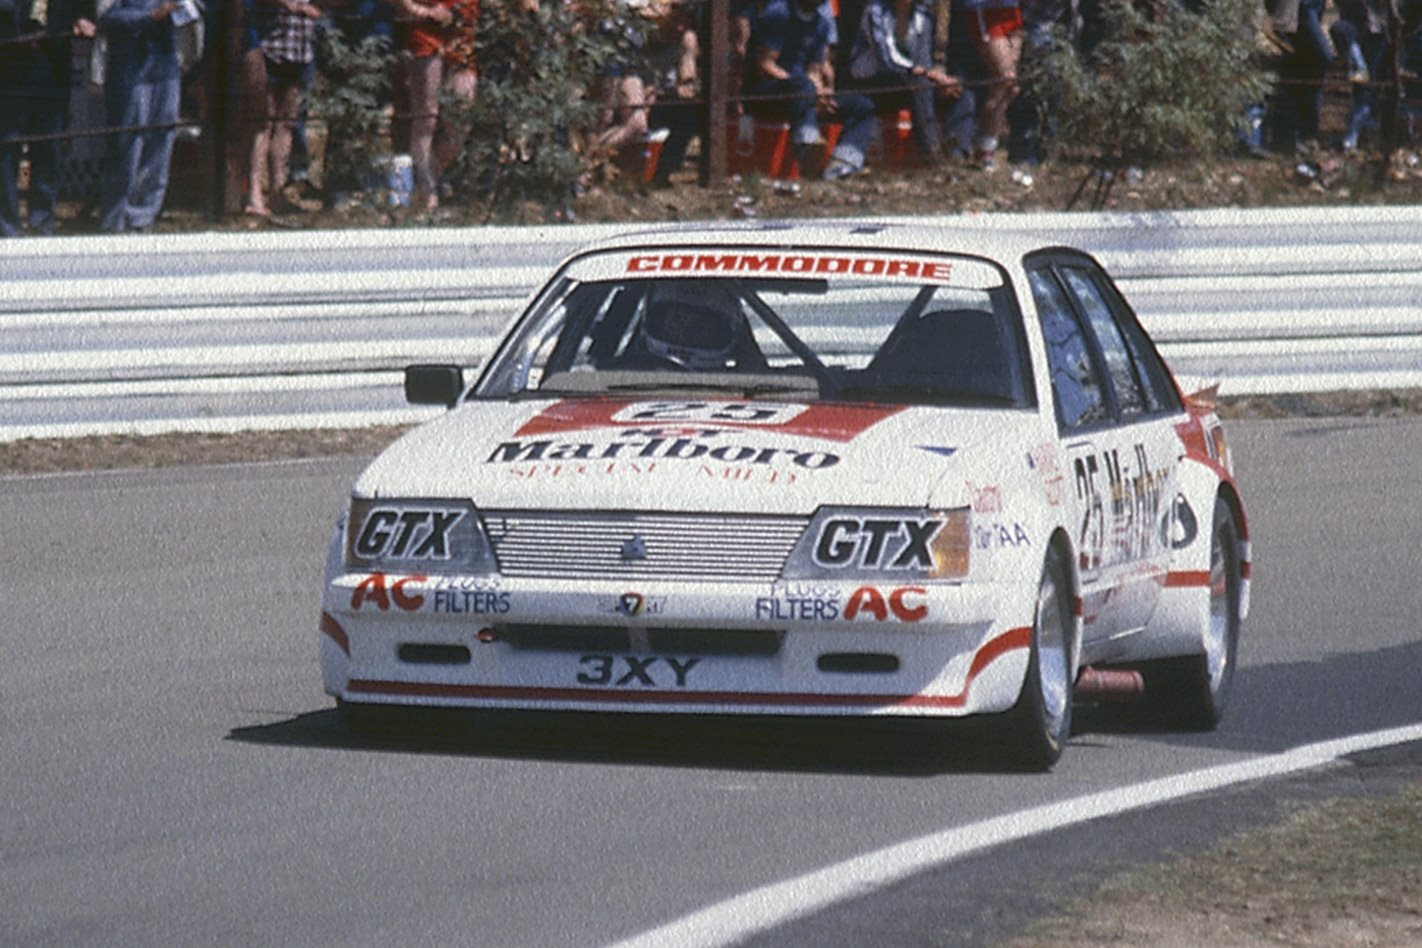 HDT Group C Bathurst